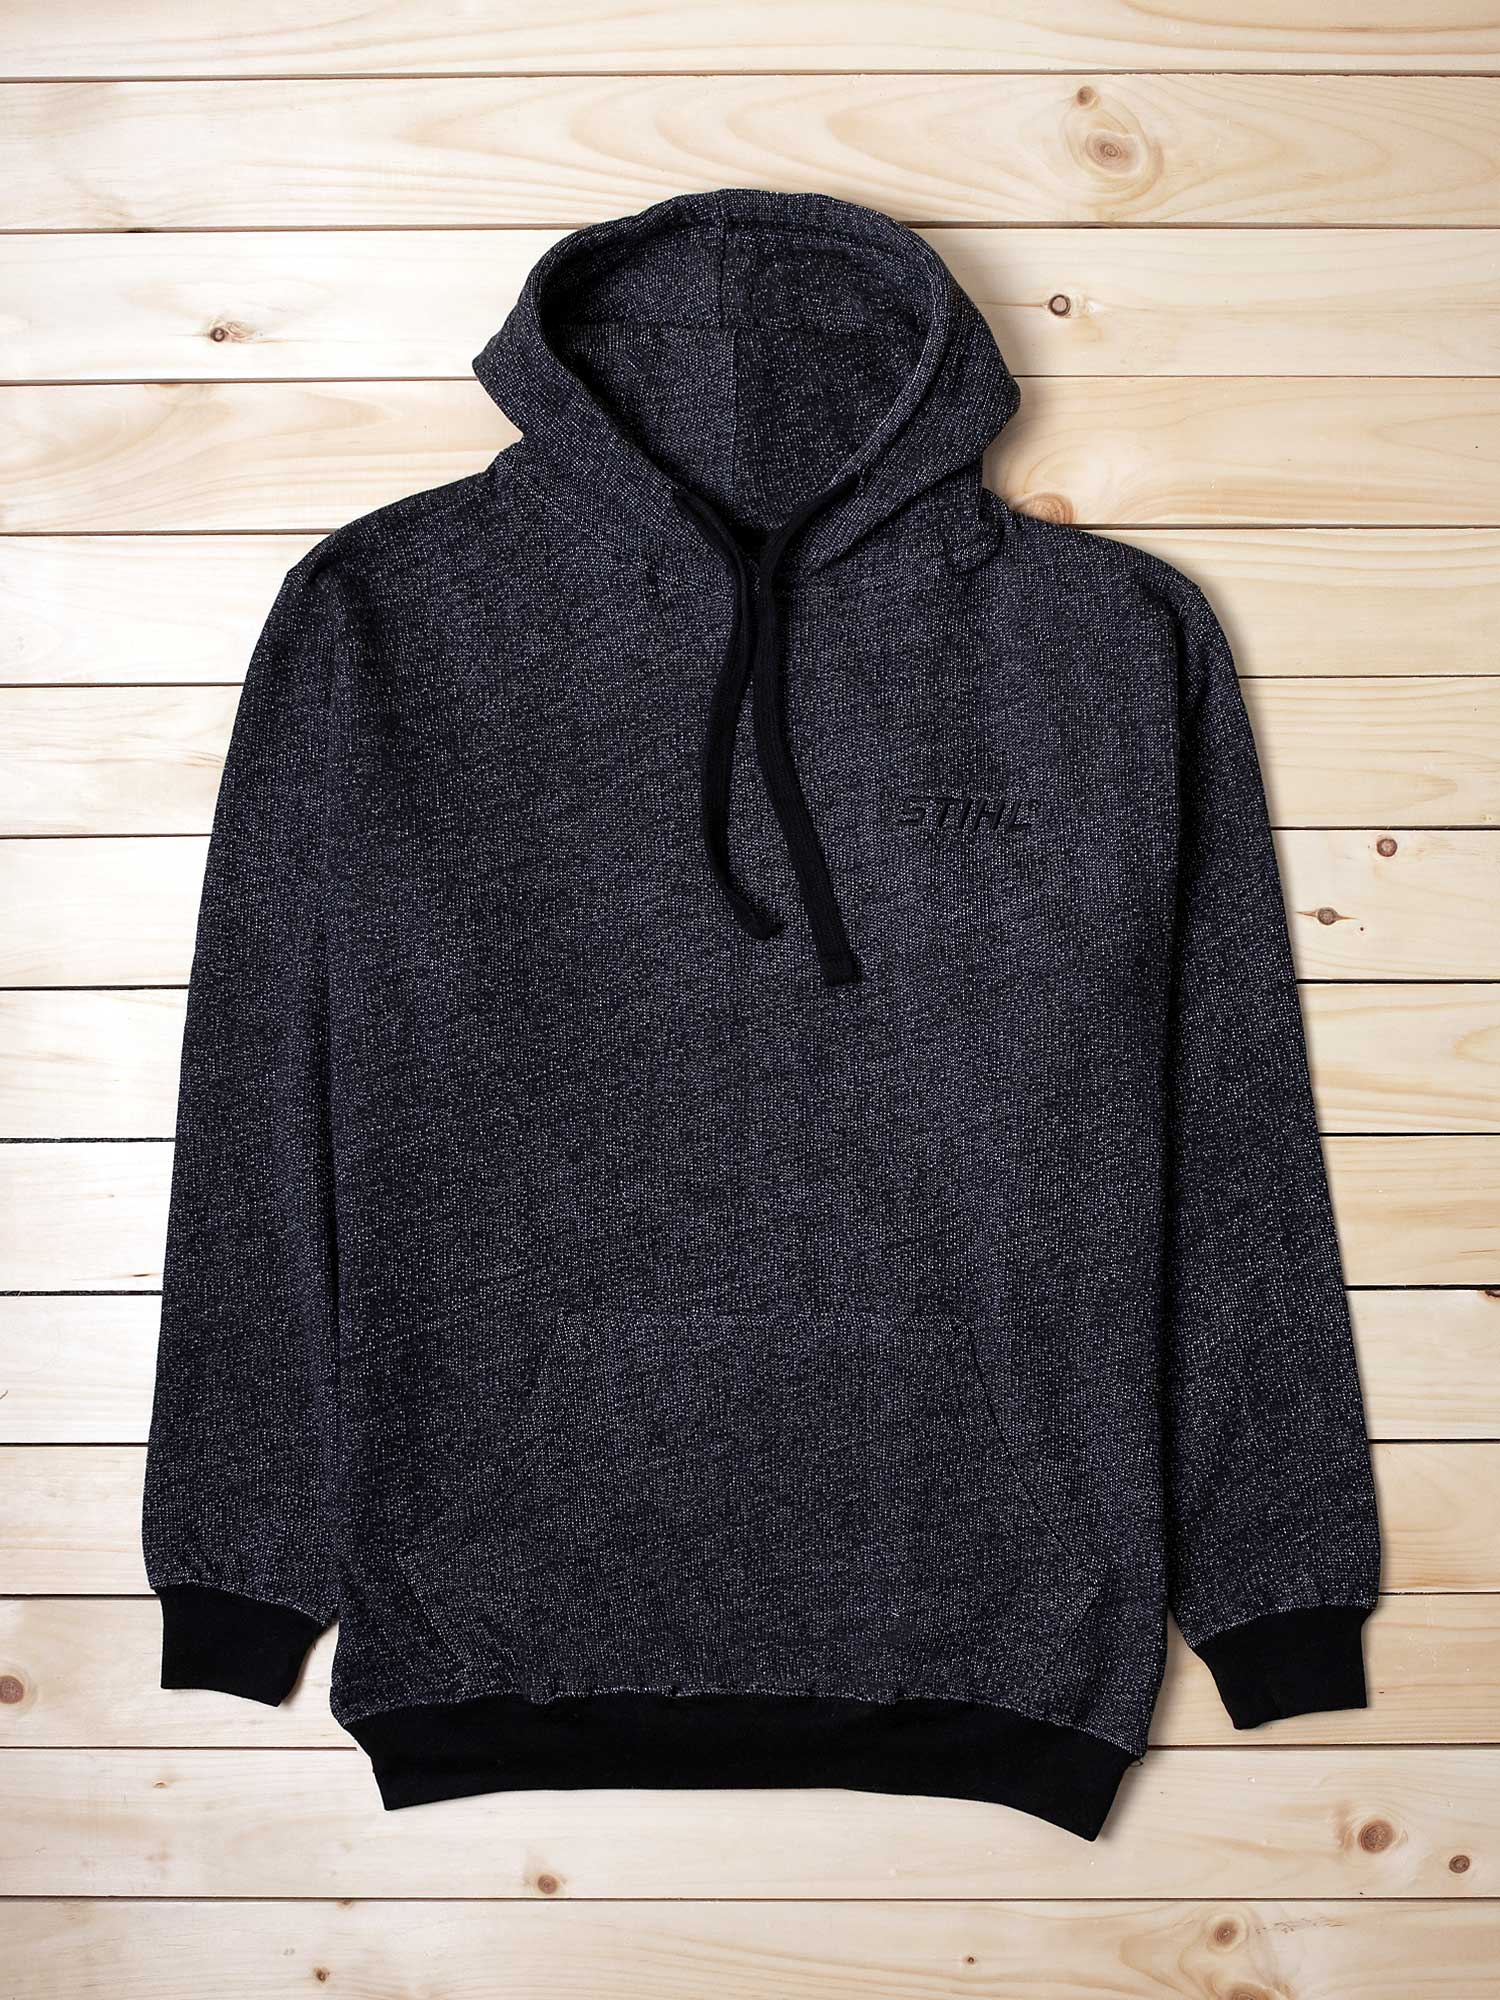 STIHL Marled Hooded Sweatshirt